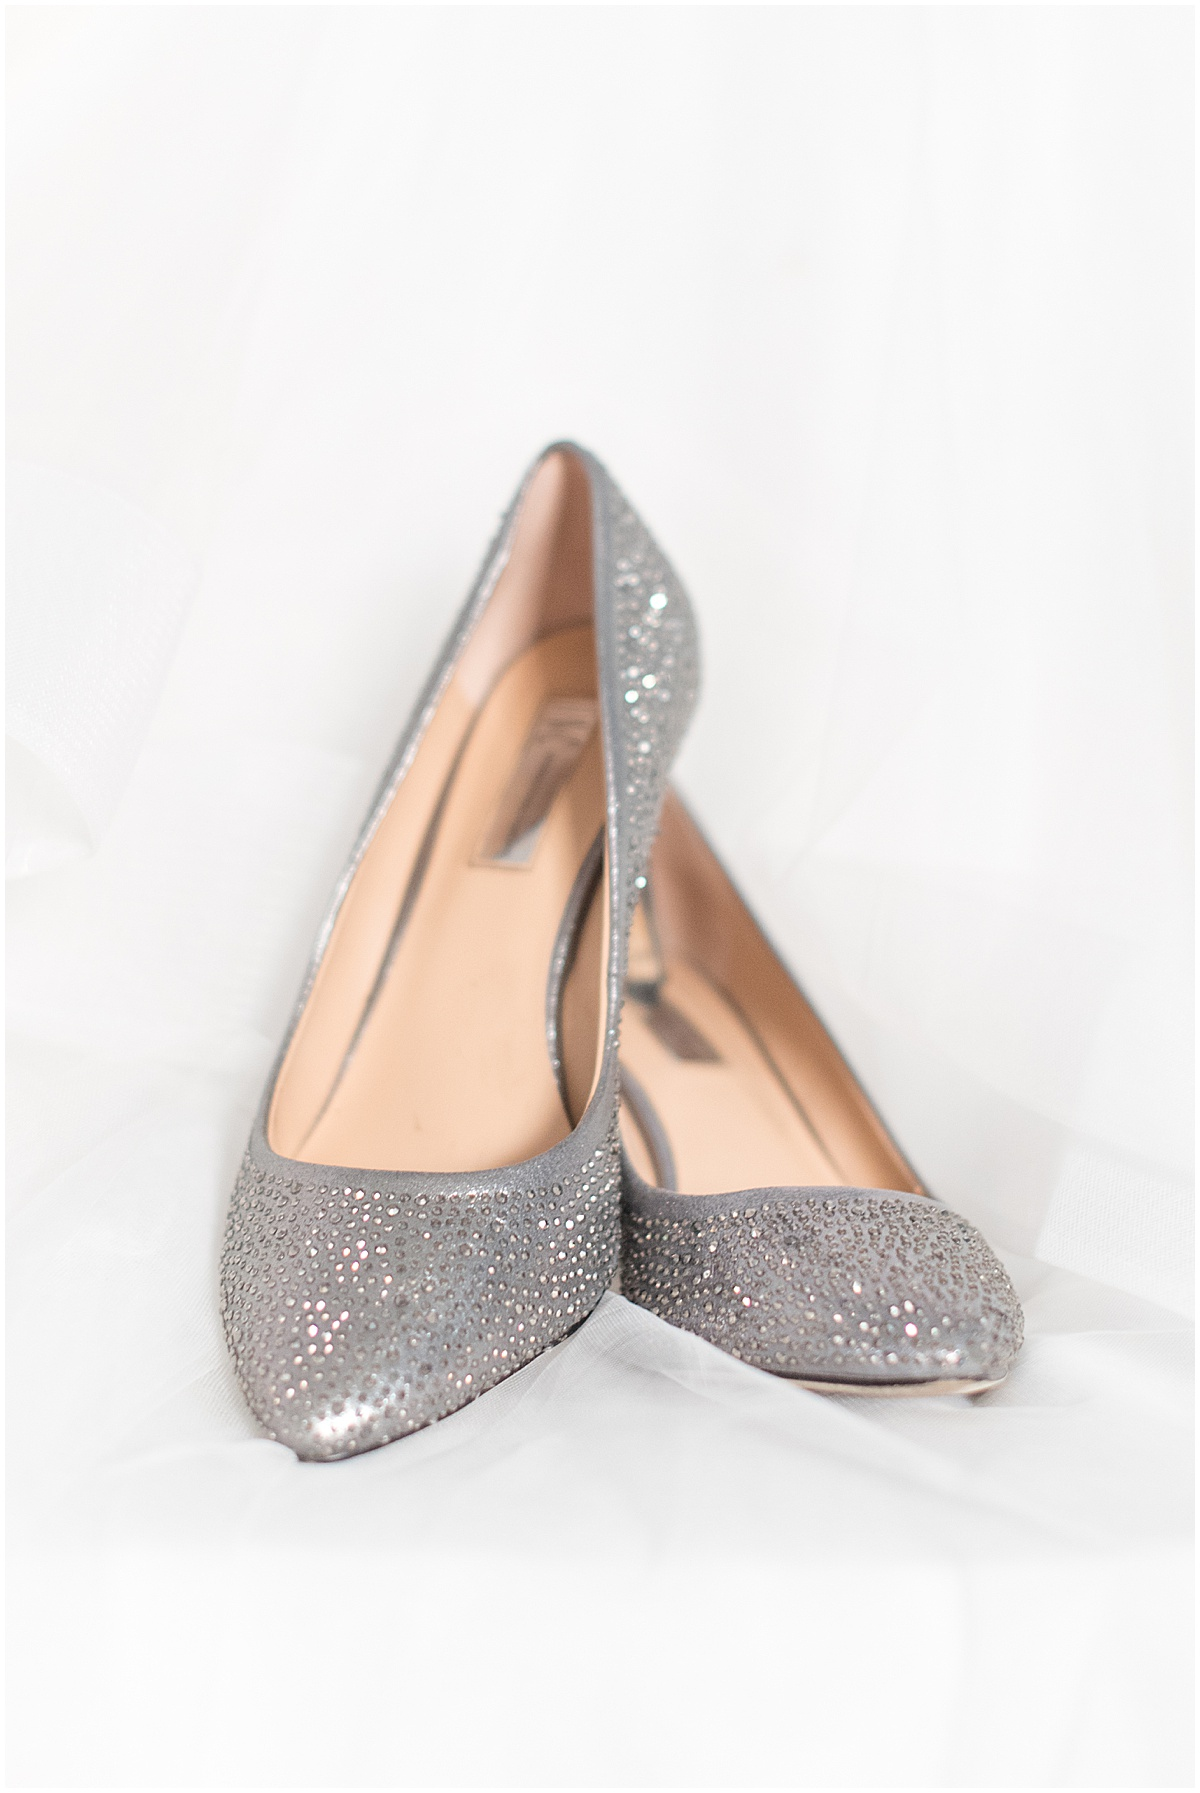 Bride's wedding shoes at Trinity United Methodist Church in Lafayette, Indiana